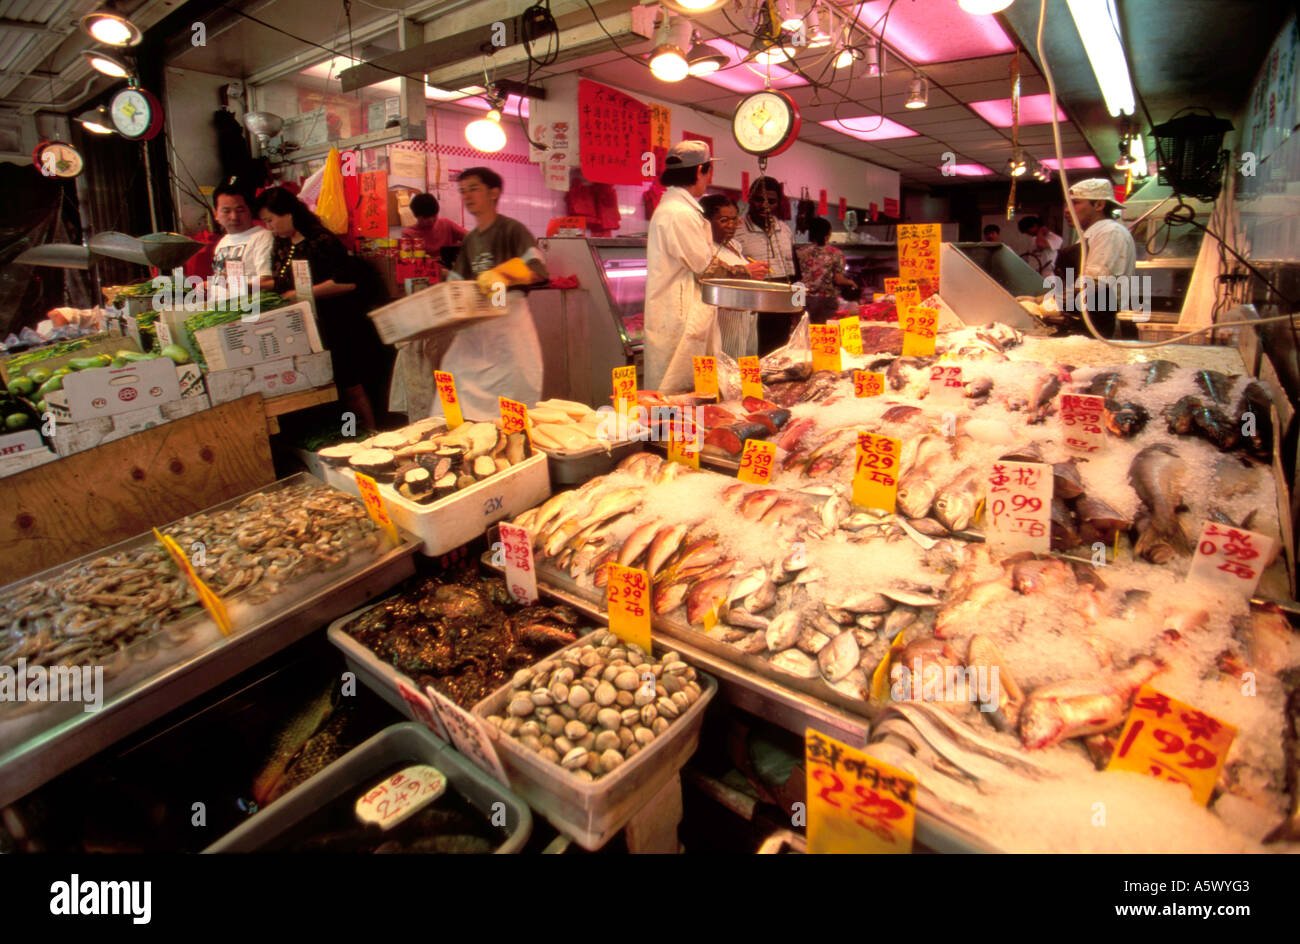 Fish shop in chinatown new york city usa stock photo for Chinatown fish market